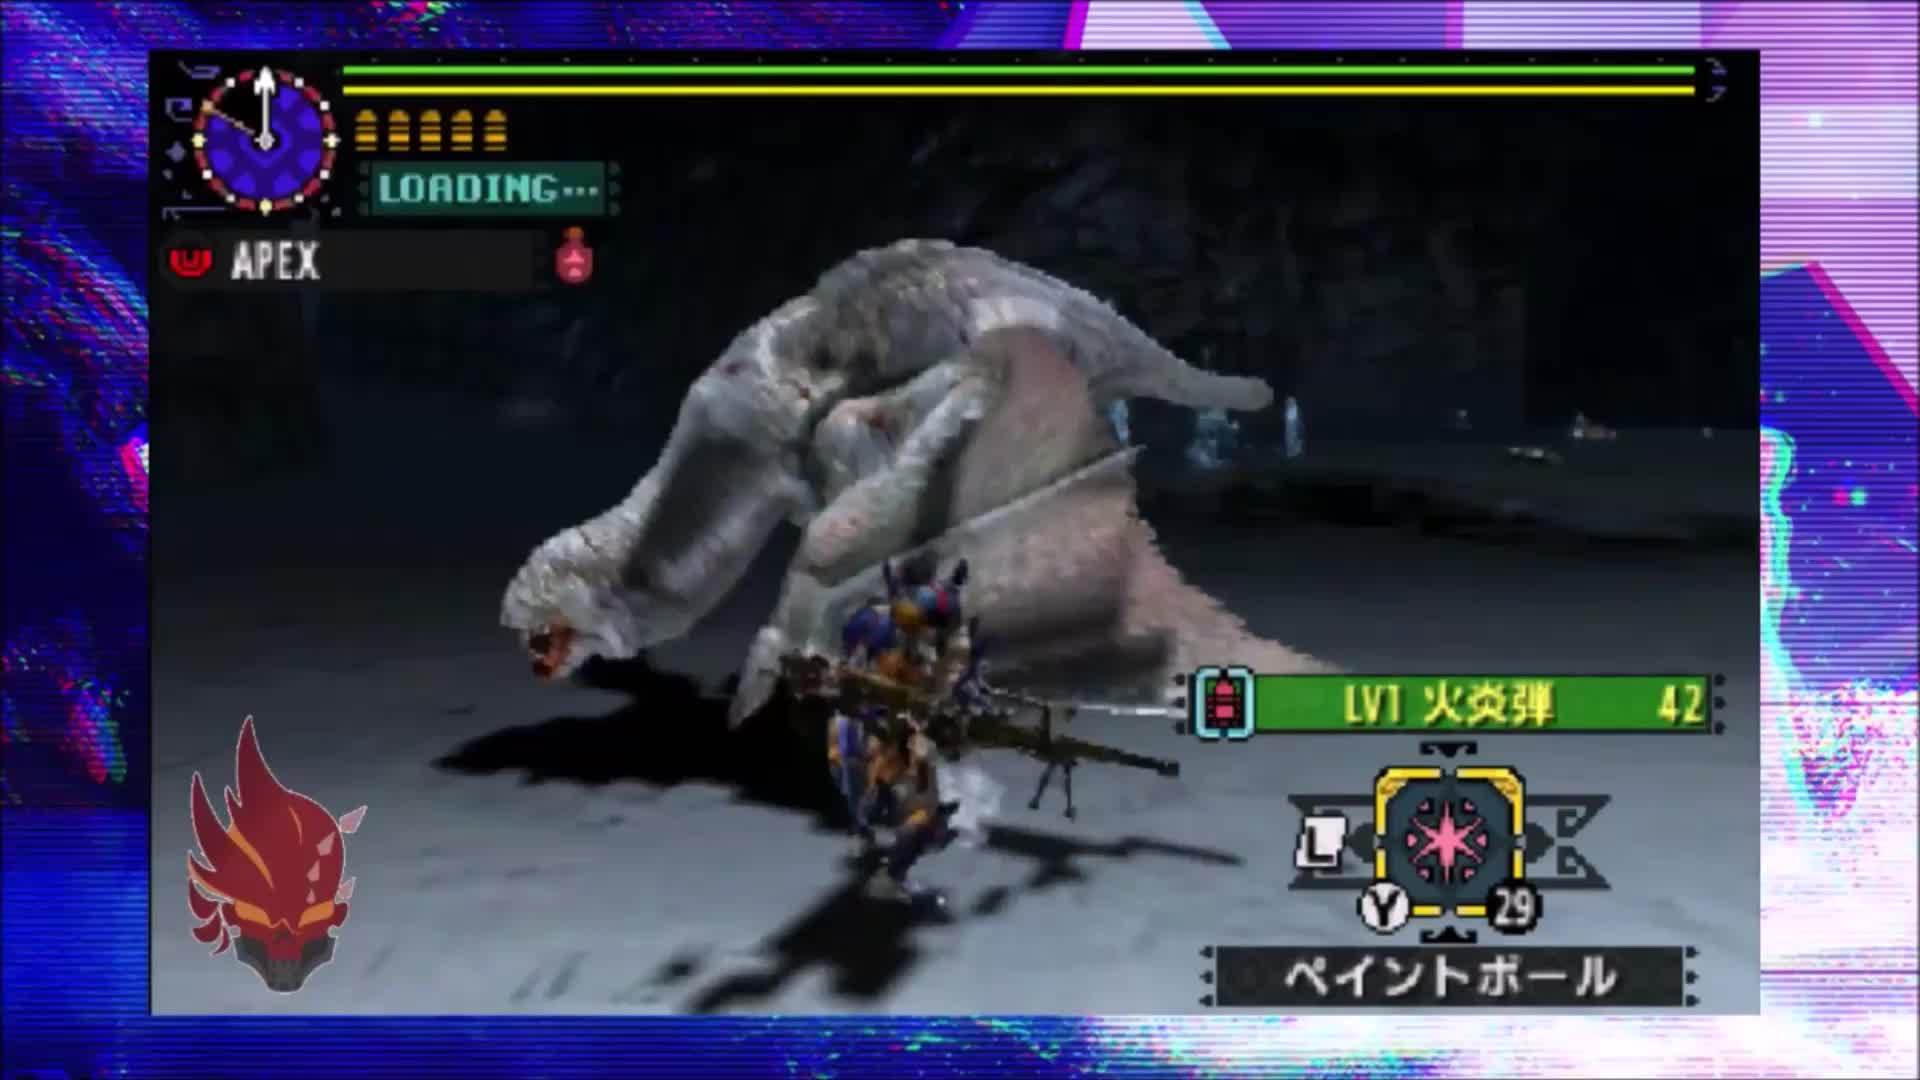 monsterhunter, Aerial HBG feels so amazing (reddit) GIFs